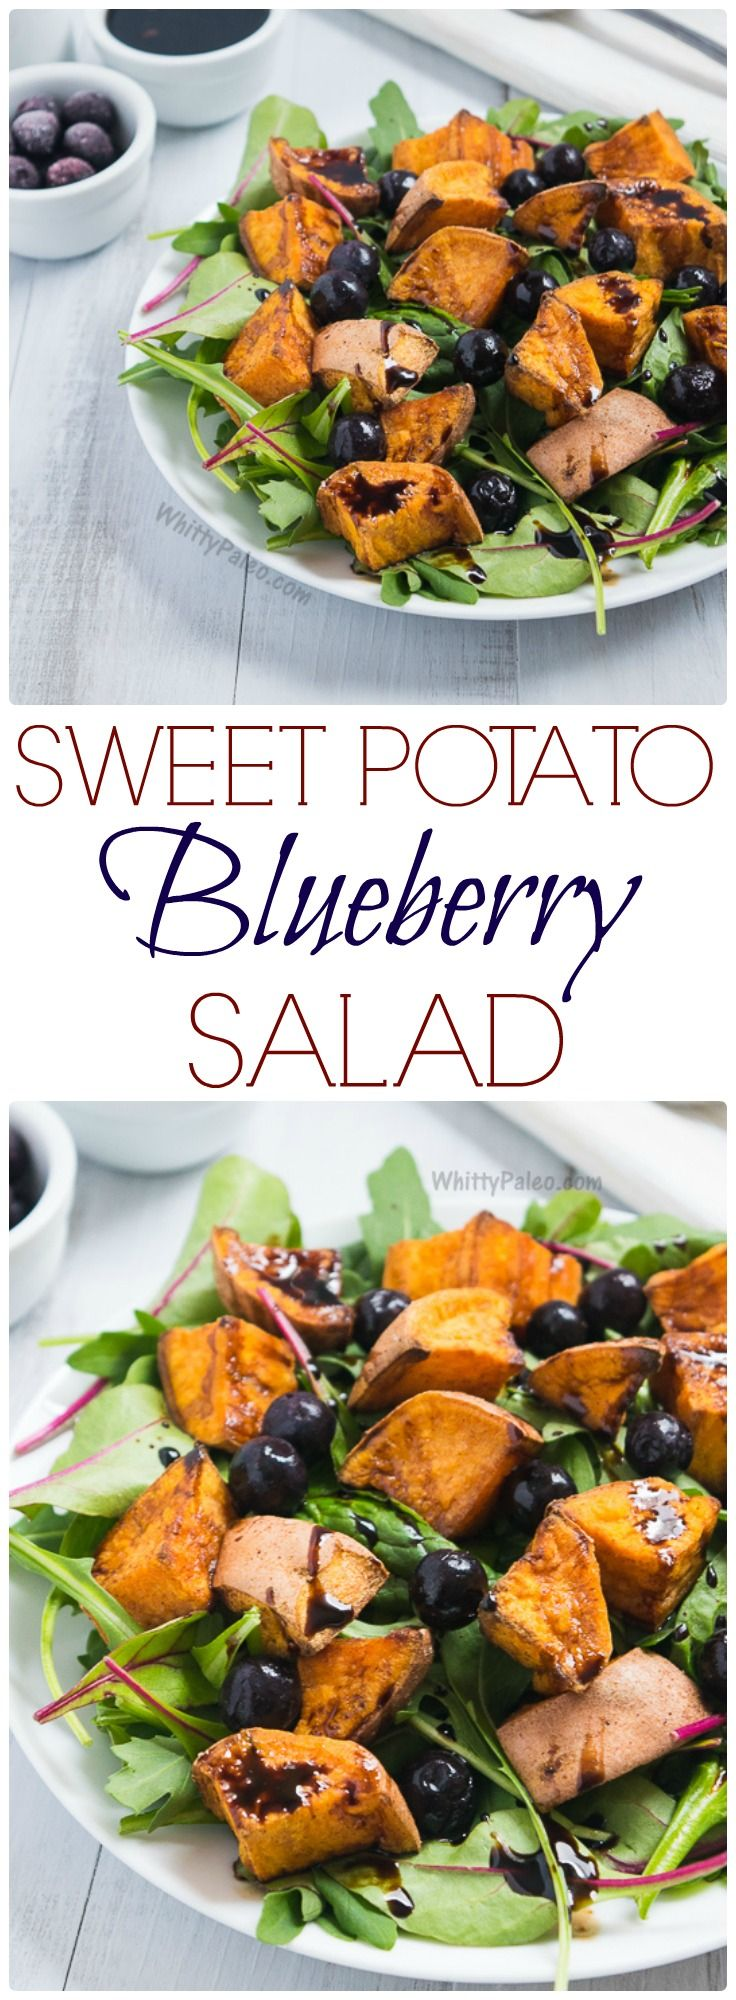 Cinnamon Roasted Sweet Potato Blueberry Salad with Balsamic Reduction from…